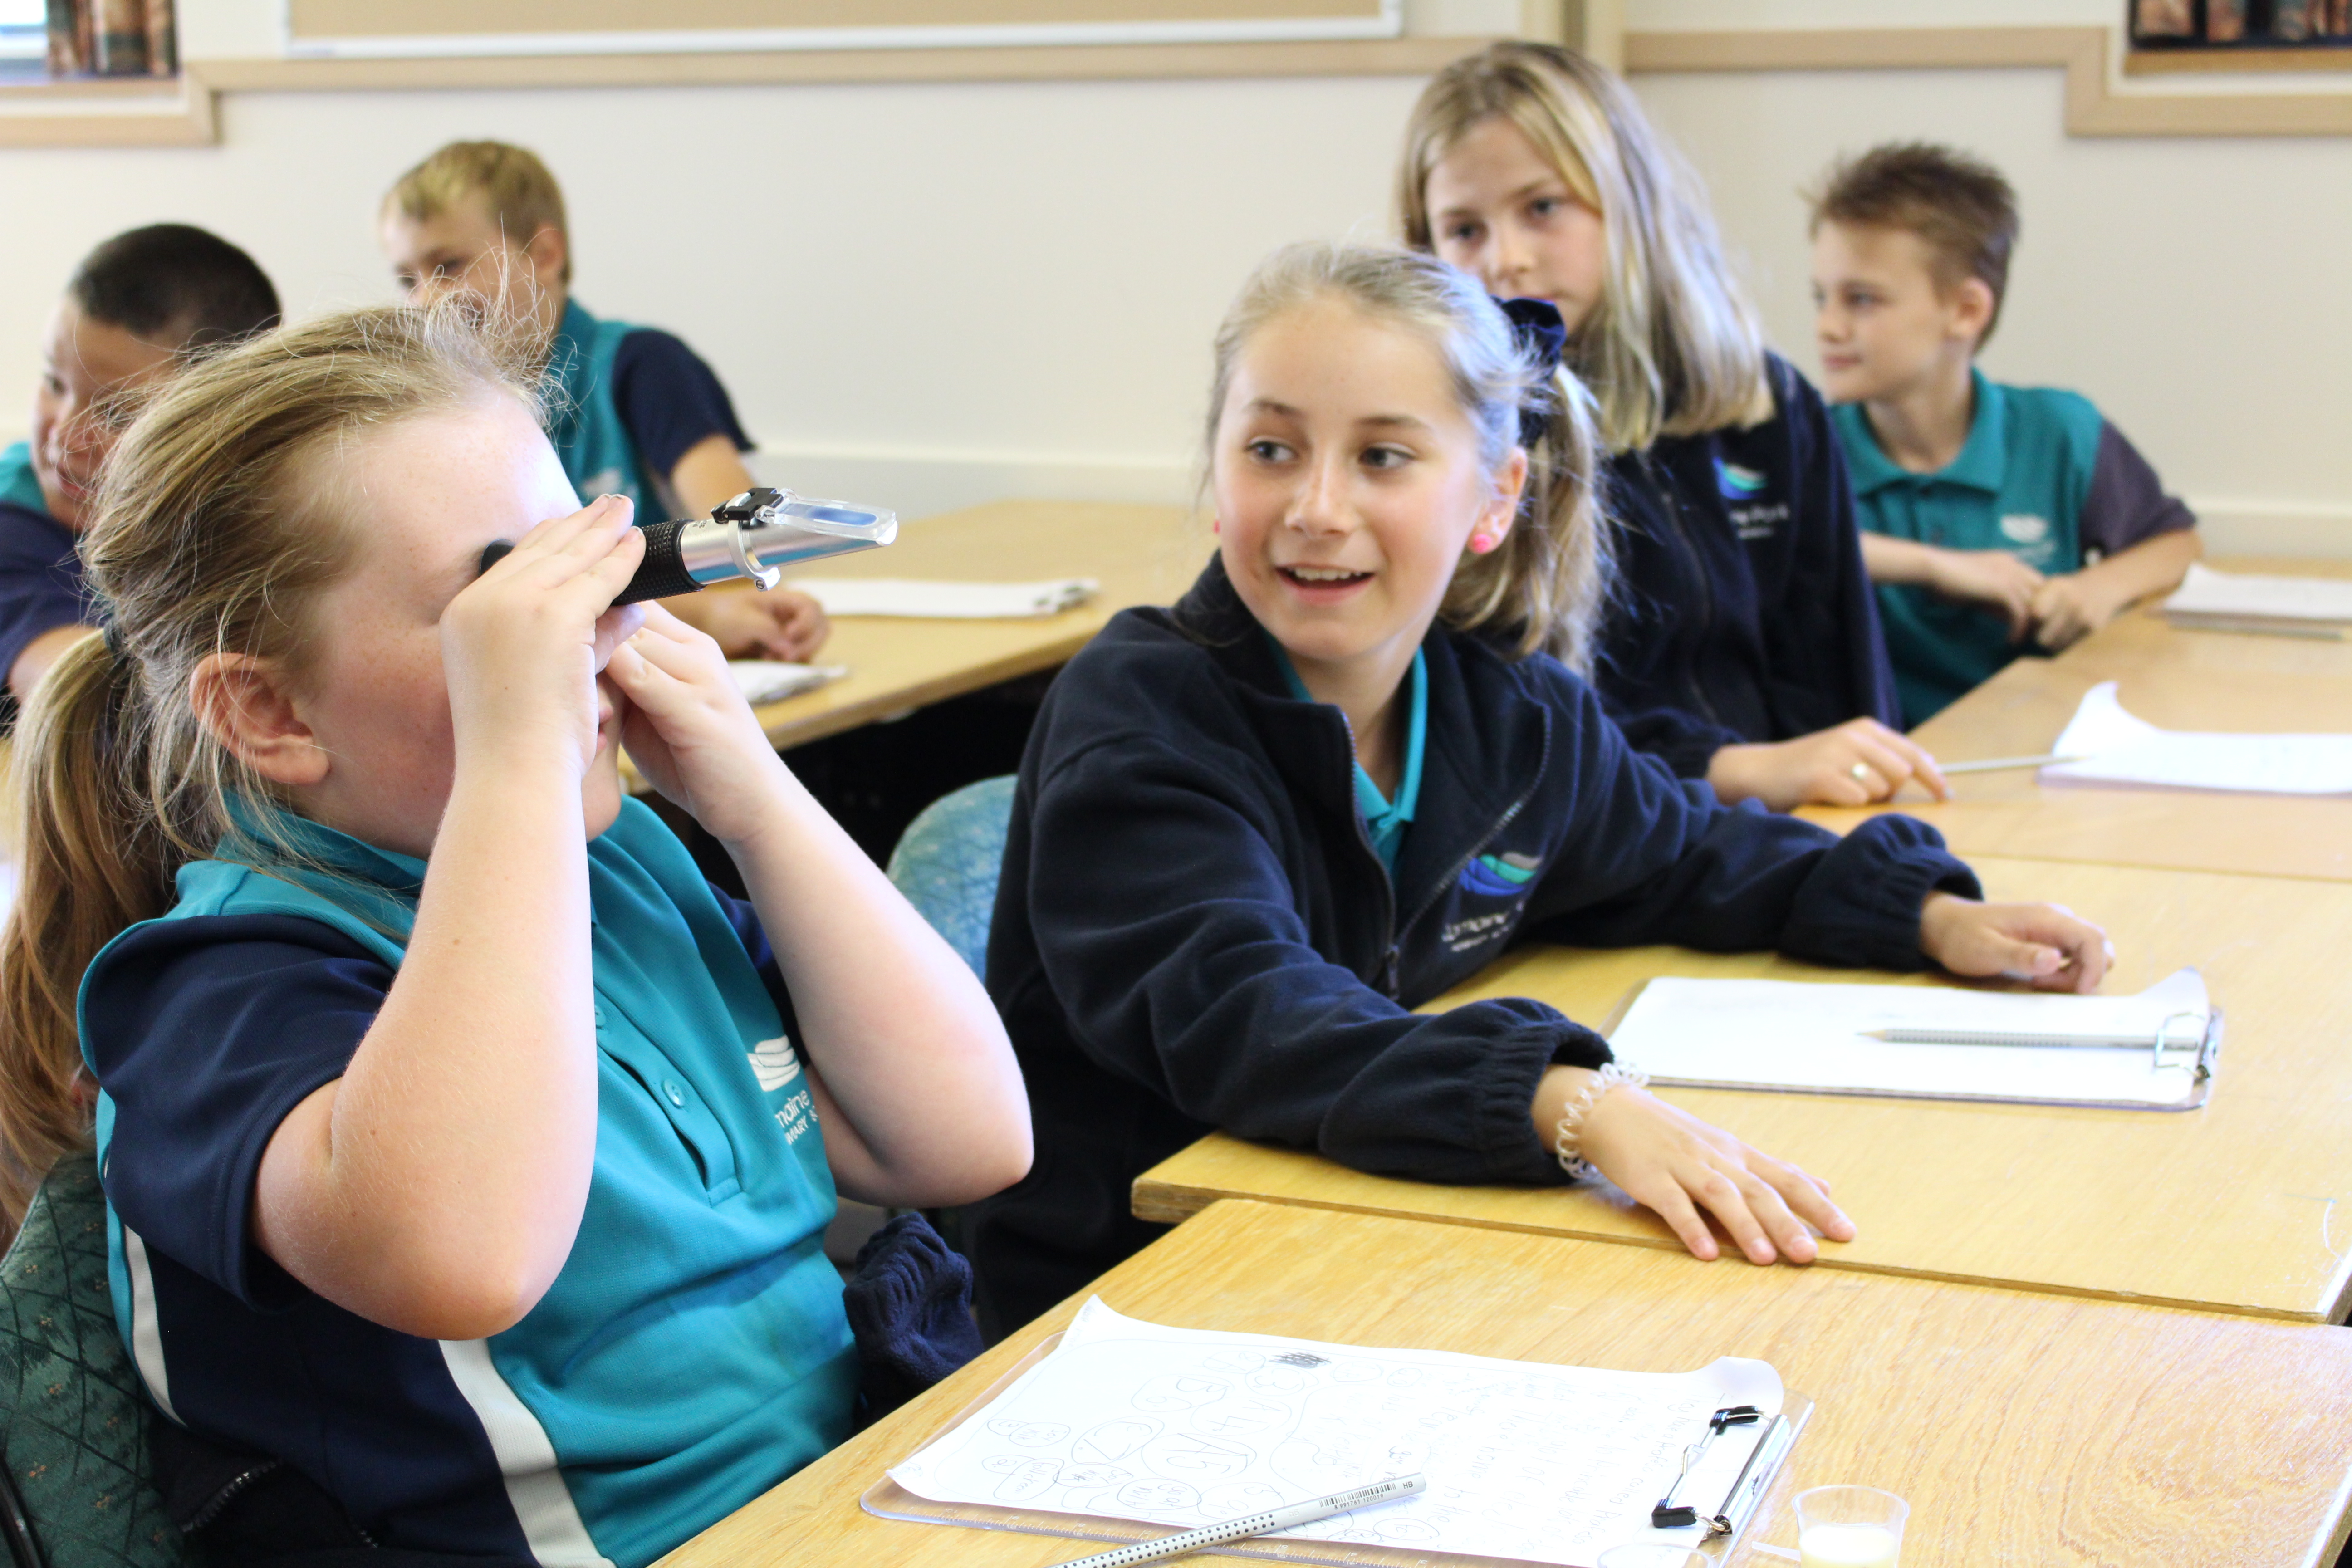 School students dream BIG during higher education visits